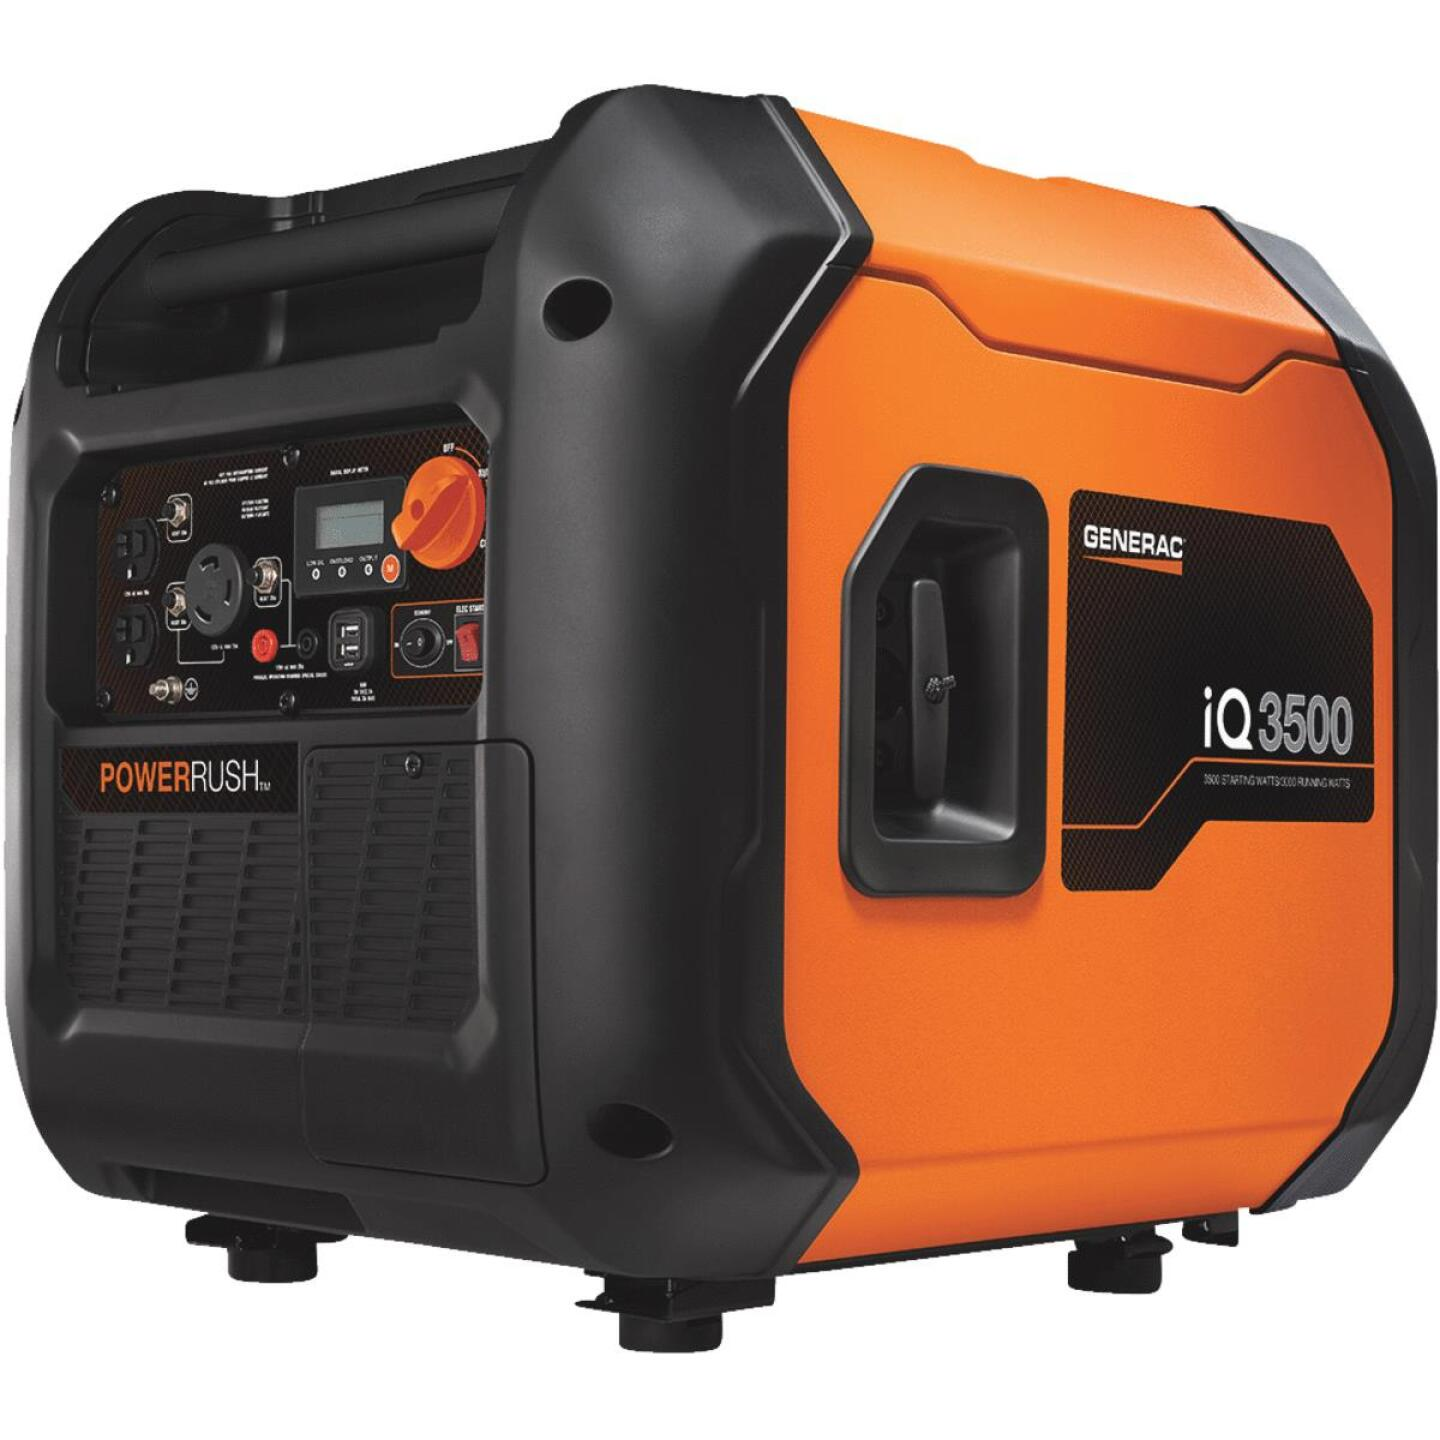 Generac iQ3500 3000W Gasoline Powered Portable Electric/Recoil Pull Start Inverter Generator Image 1